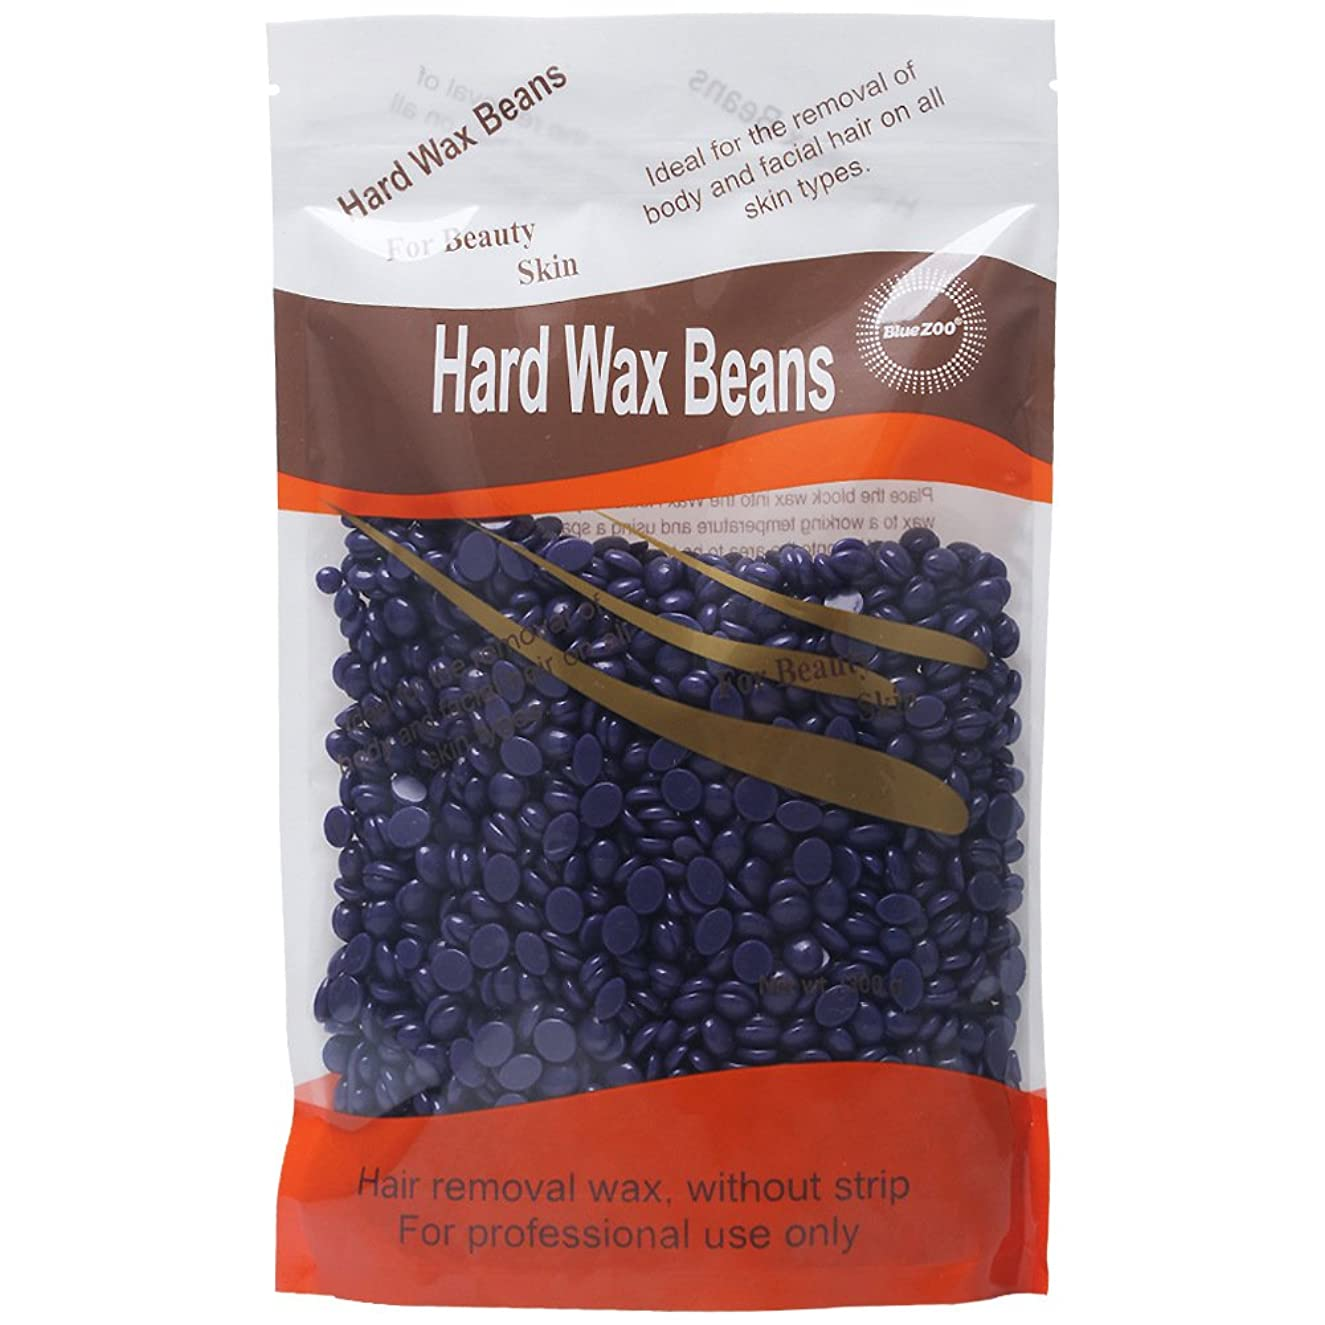 BlueZoo Waxing Hair Removal Hard Wax Beans Low Temperature Natural Hot Film Depilatory No Strips 300g (Lavender)